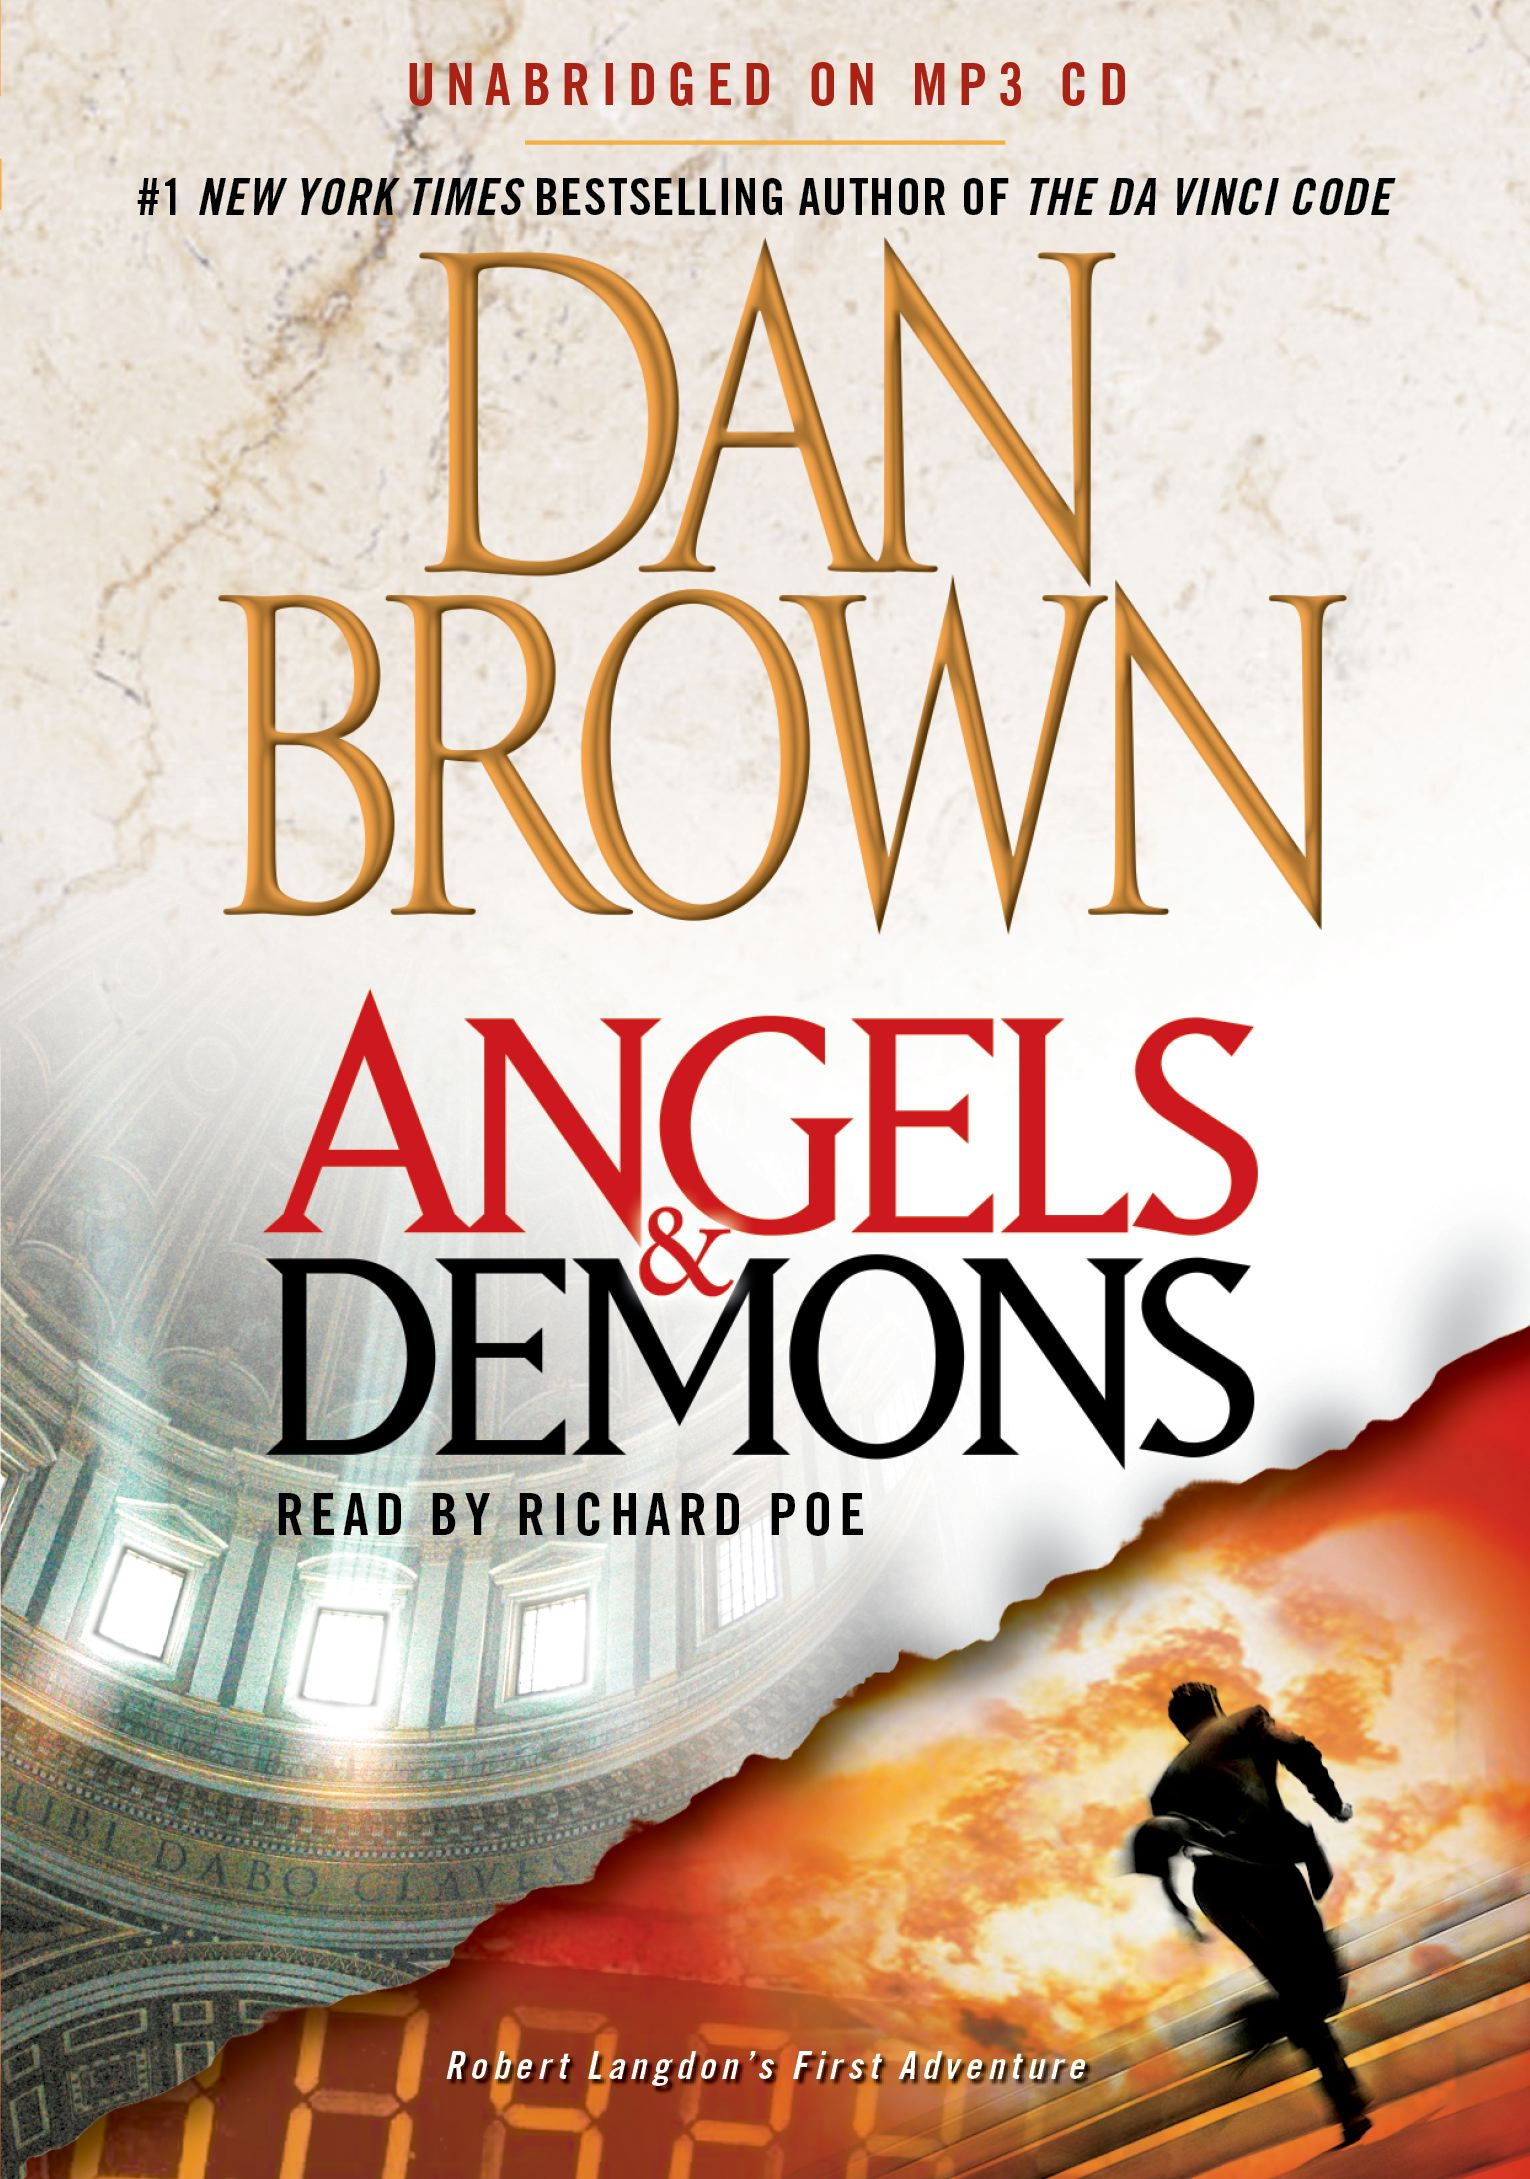 Angels-demons-9781442365476_hr